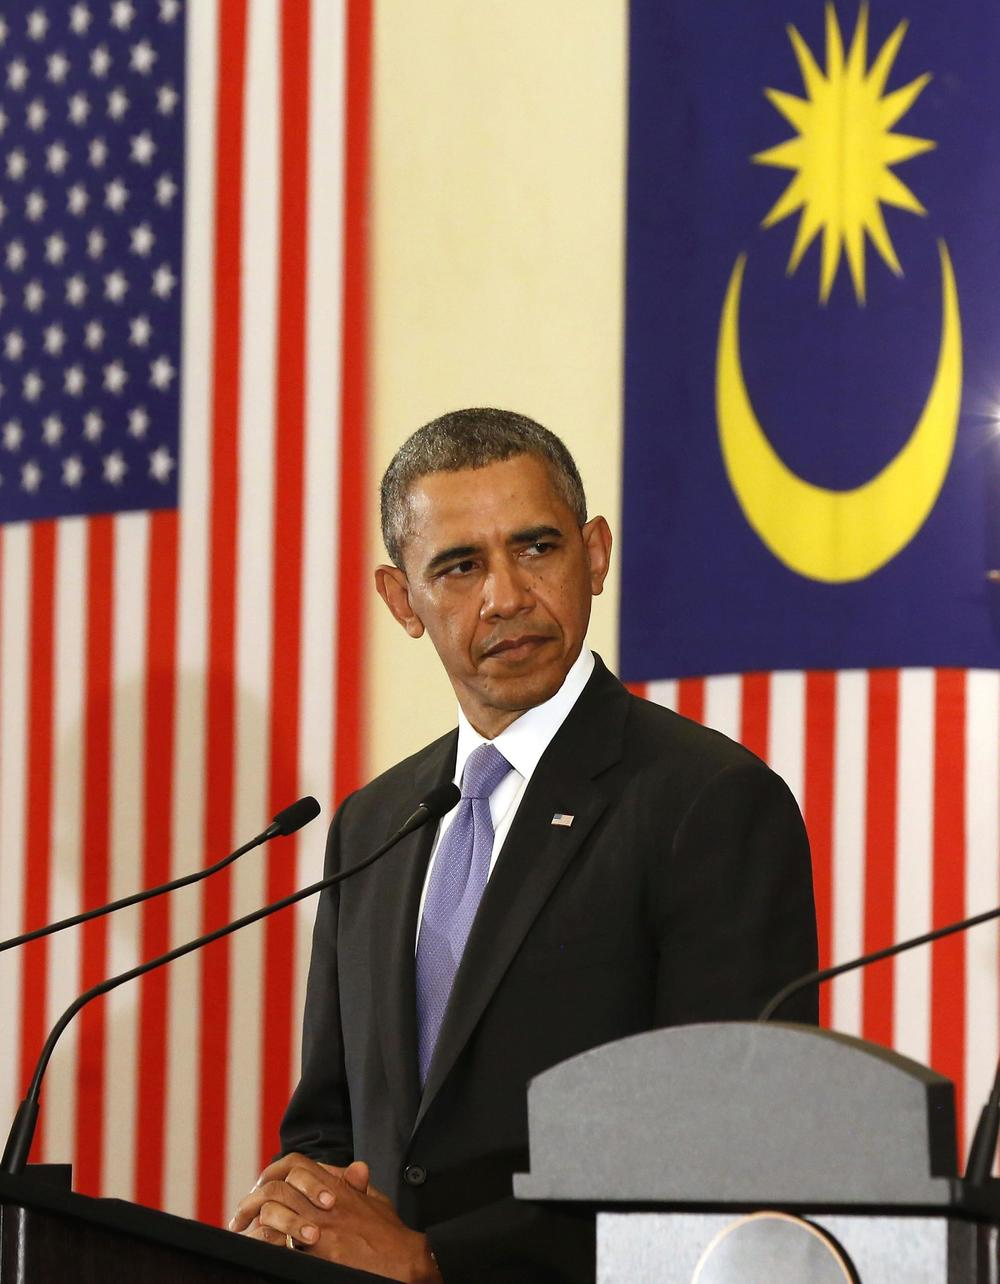 ABOVE: With the Islamic-influenced Malaysian flag as a backdrop, Barack Obama publicly lashed out at any and all who have criticized his response to ISIS and his oddly driven desire to allow thousands of Syrian refugees into the United States. Mr. Obama went so far as compare those who oppose his policies to terrorists.